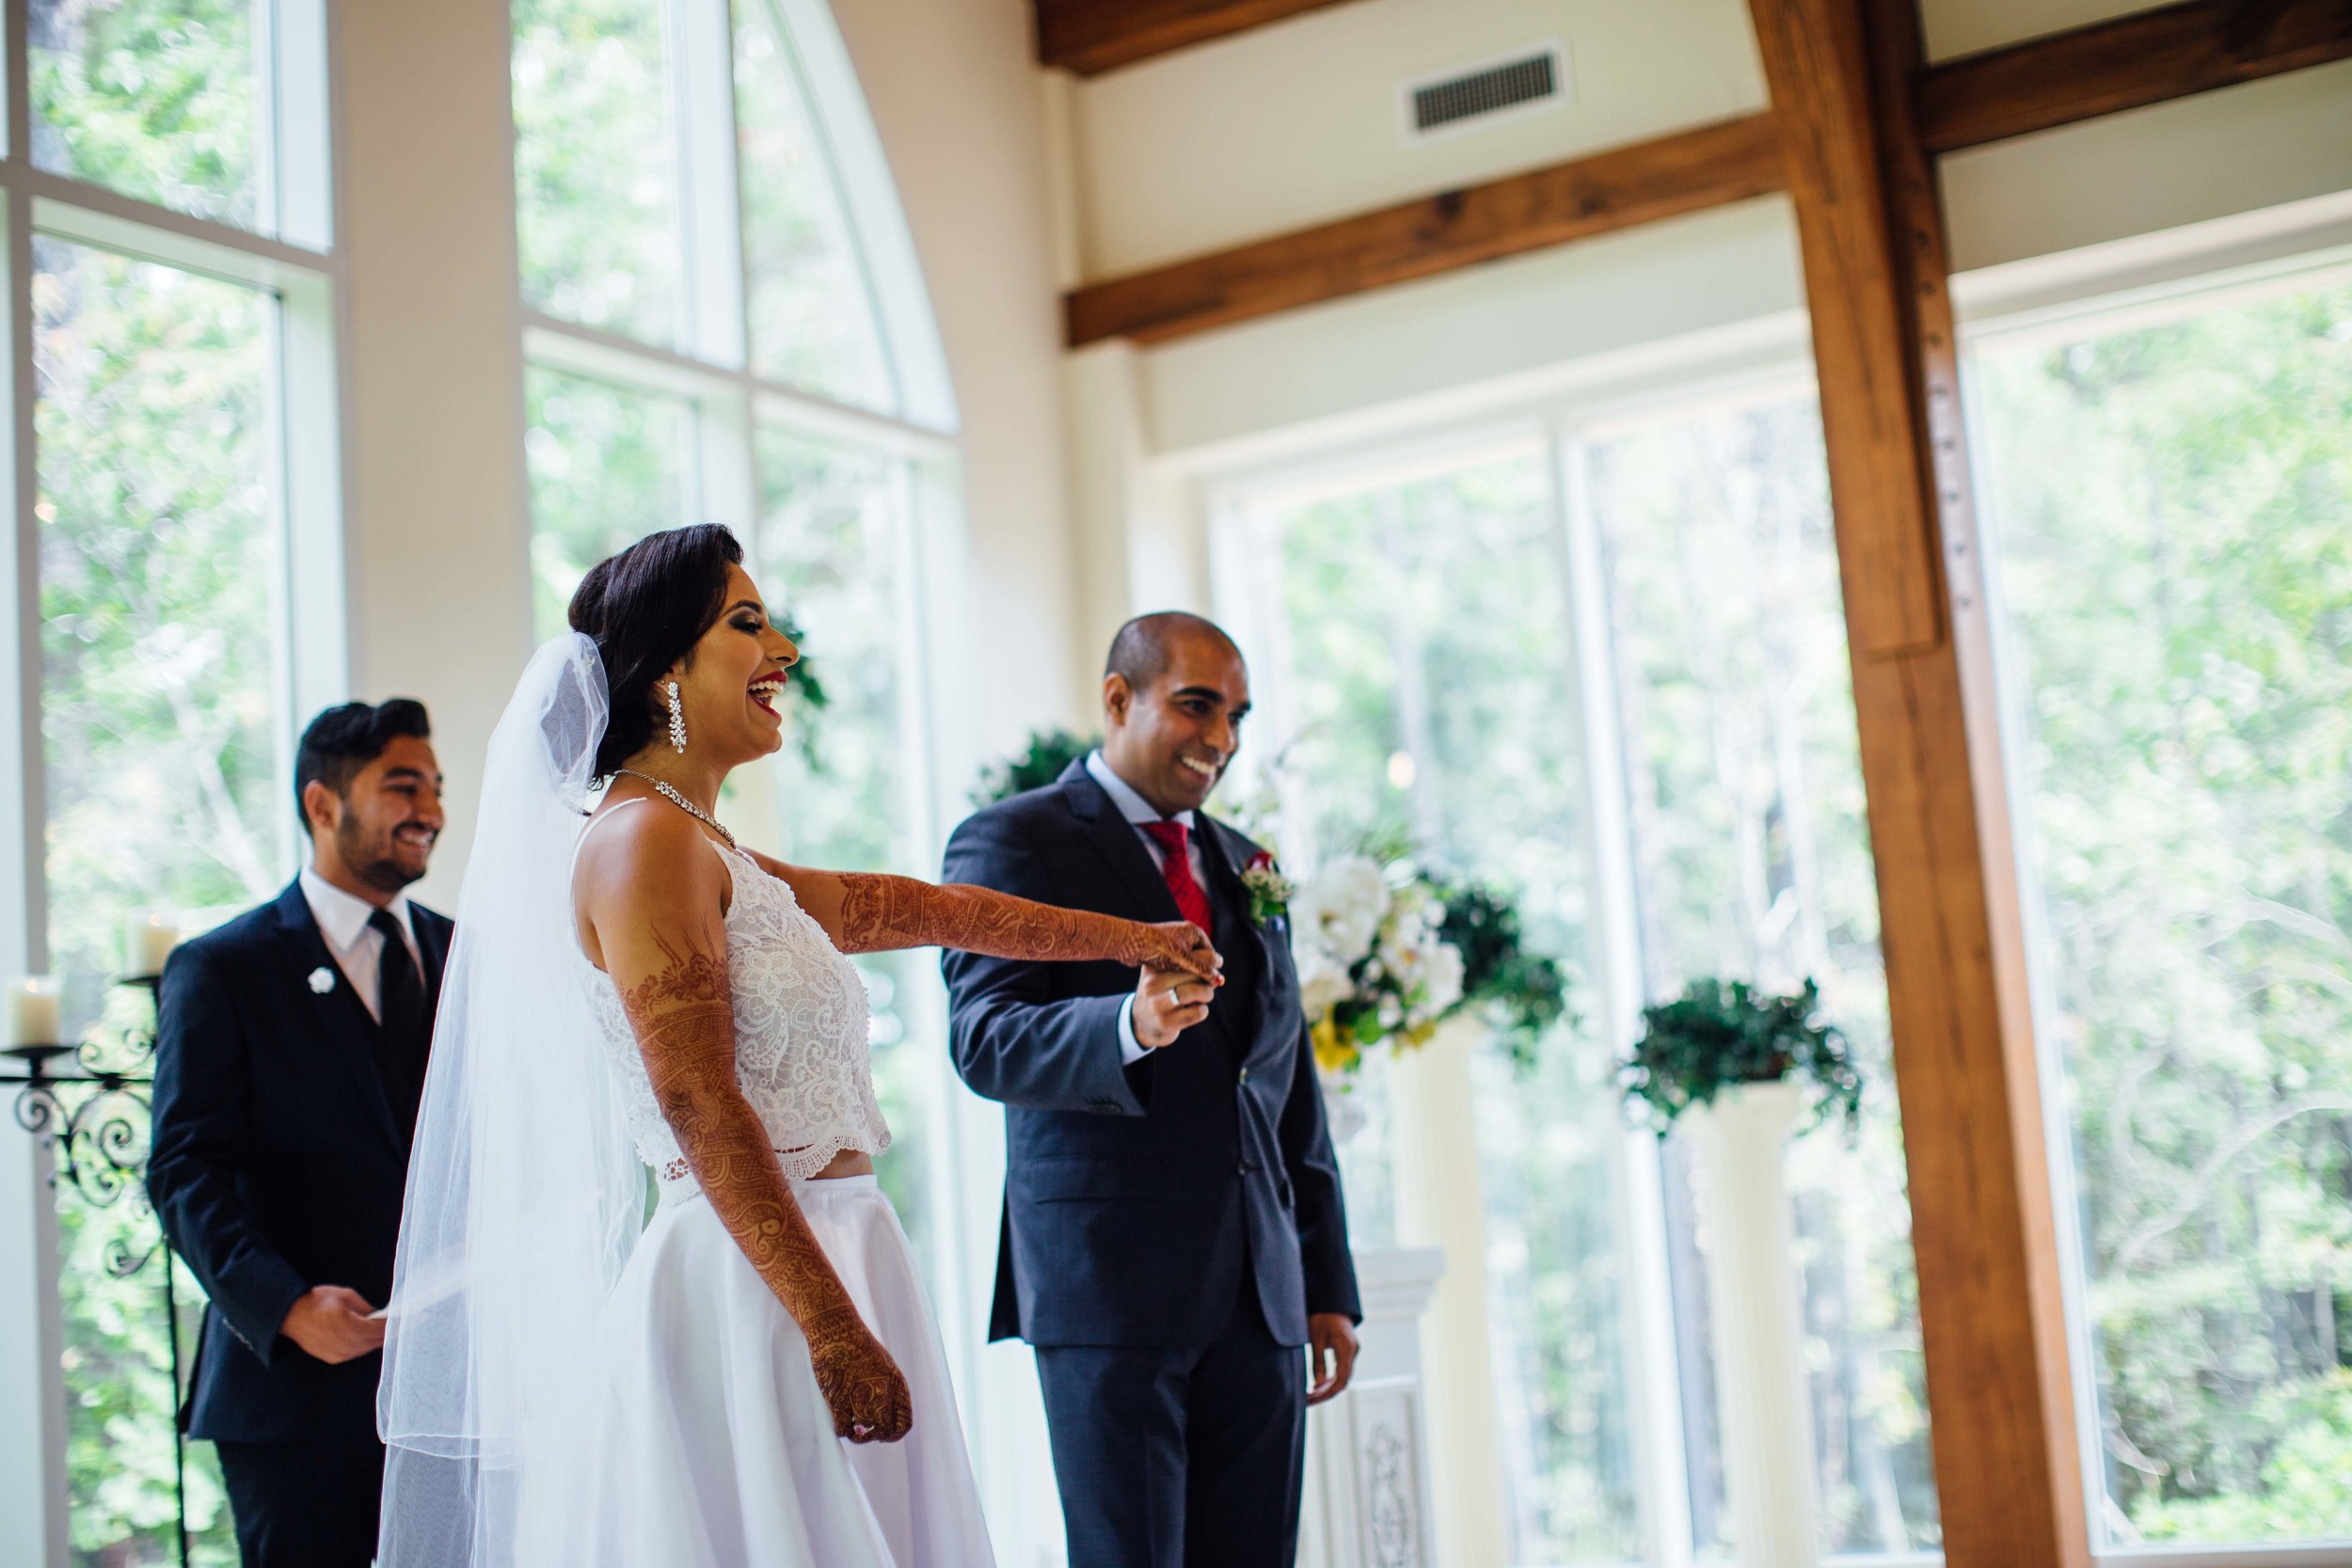 Kiyah C Photography Atlanta Wedding Photographer-25.jpg